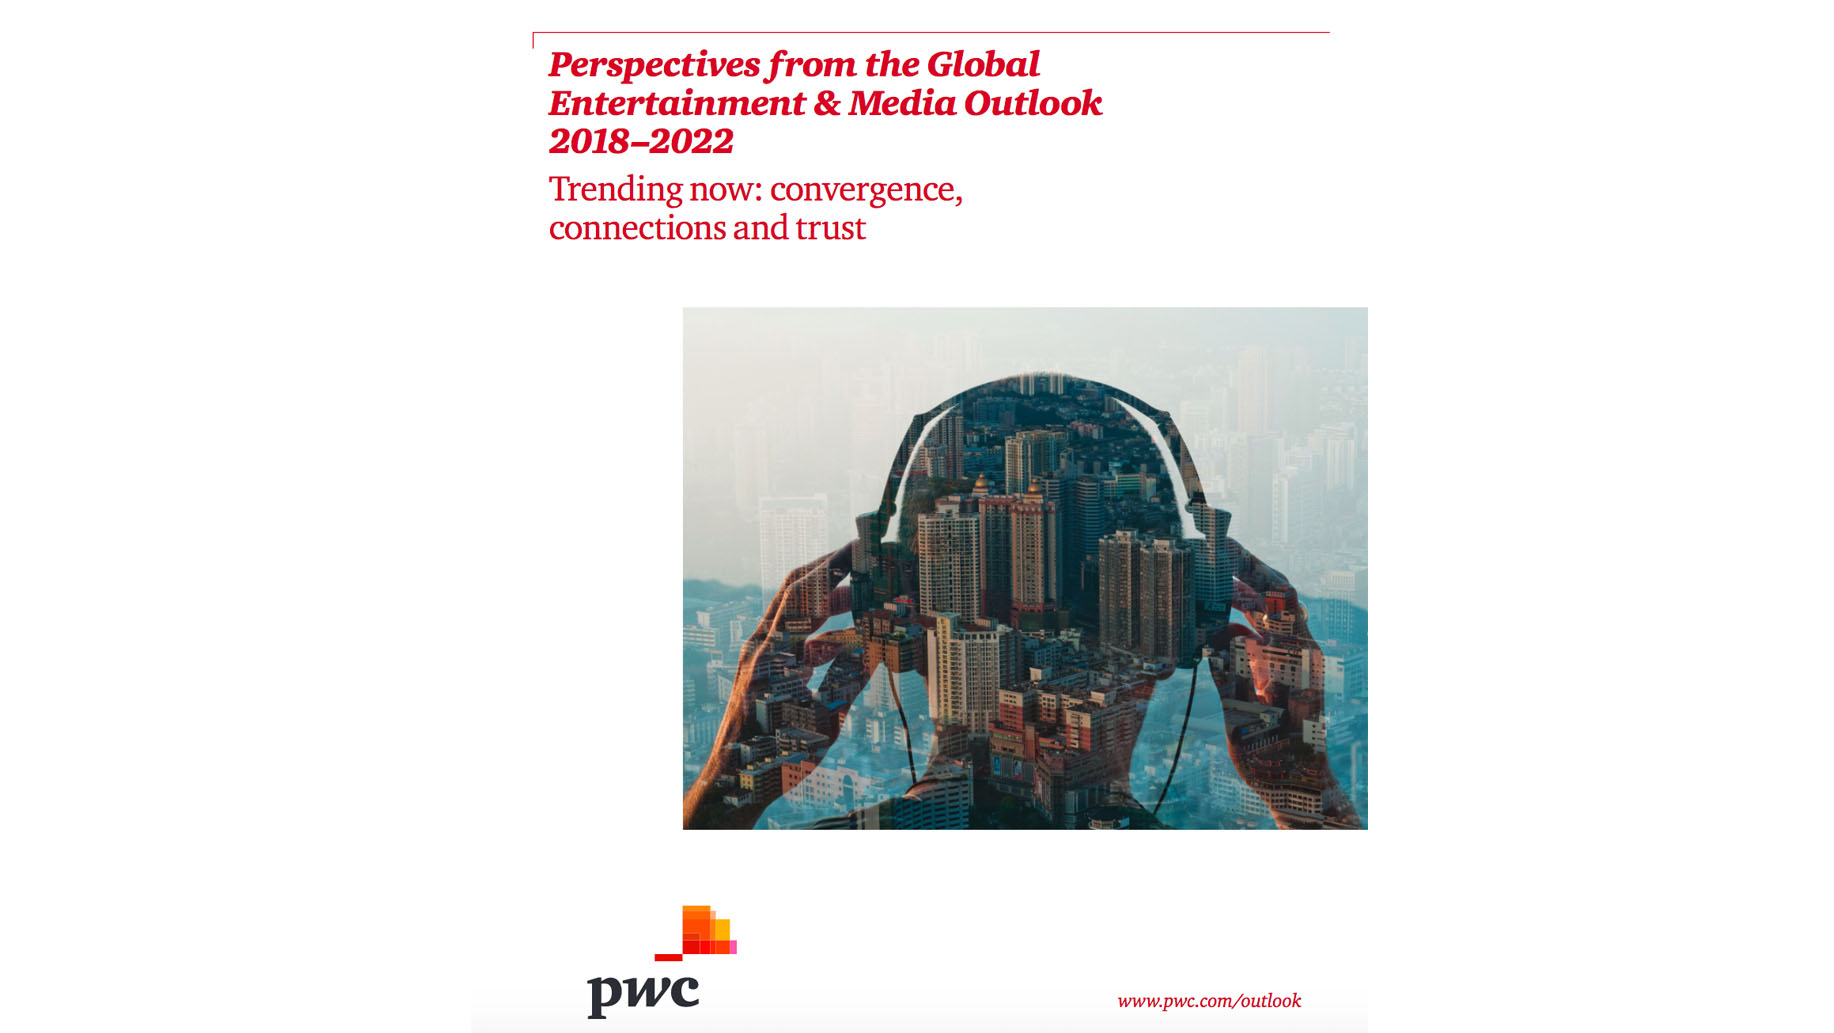 pwc-global-entertainment-media-outlook-2018-2022-1